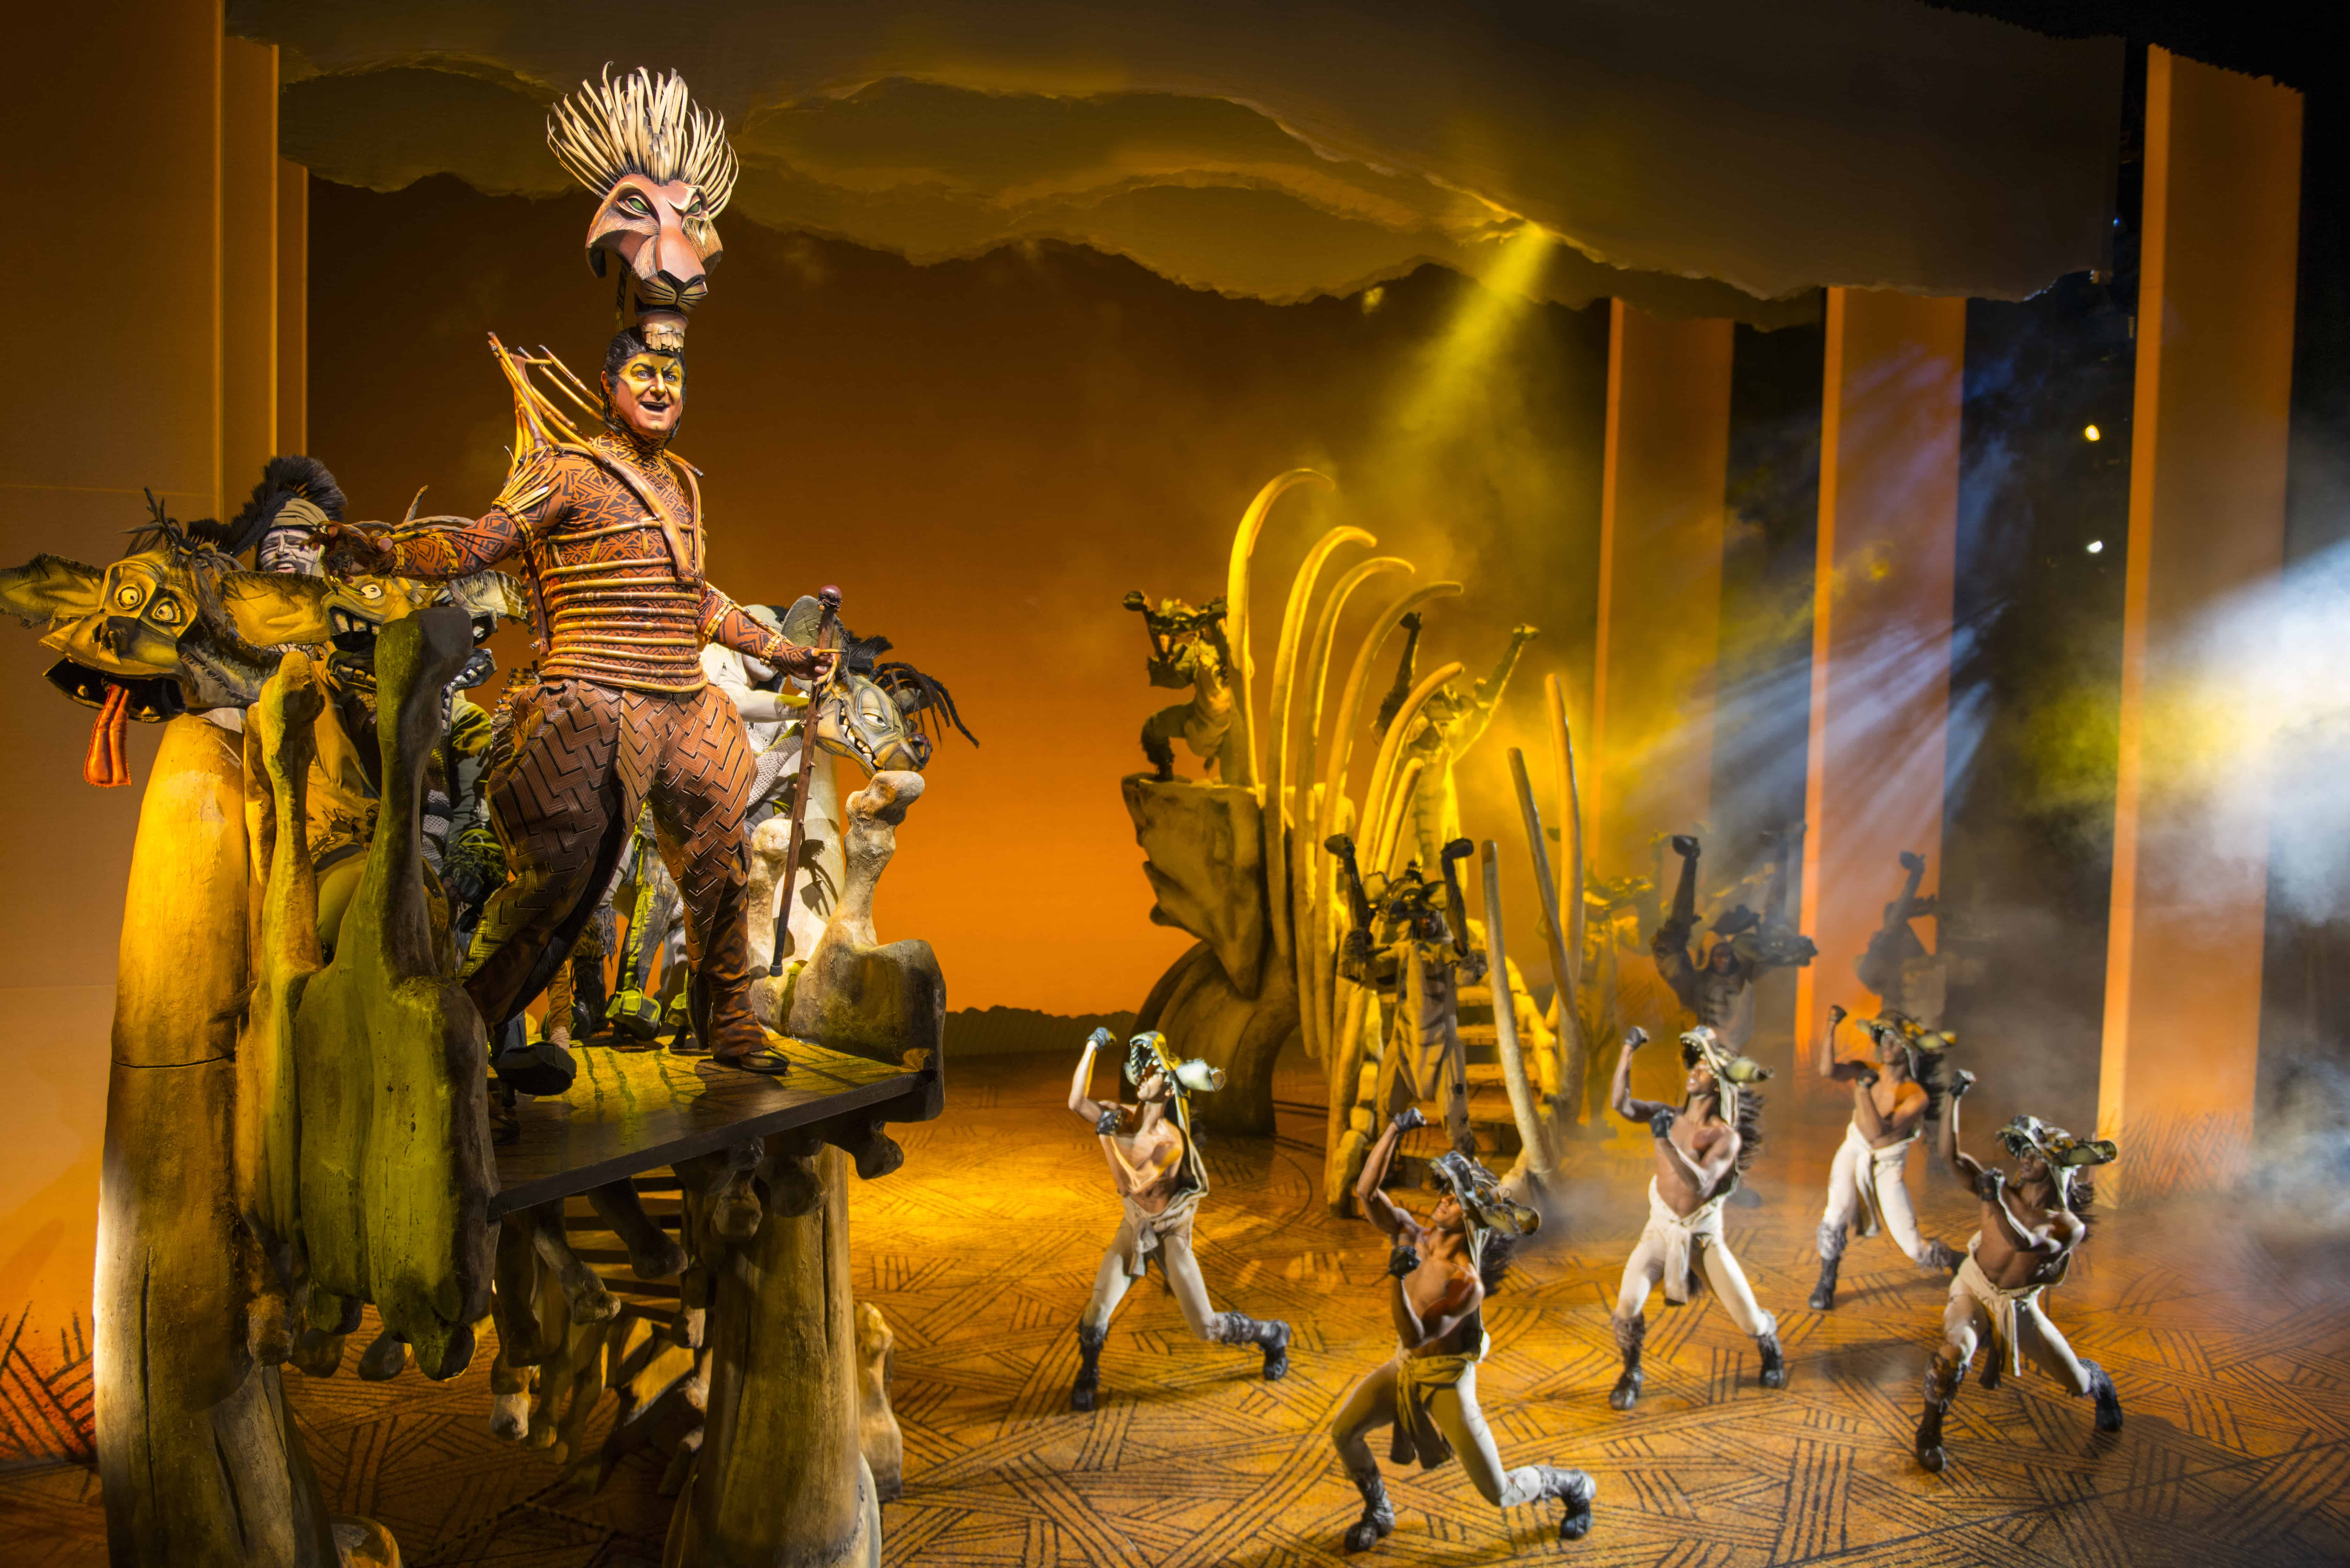 Tickets Available for The Lion King at The Detroit Opera House